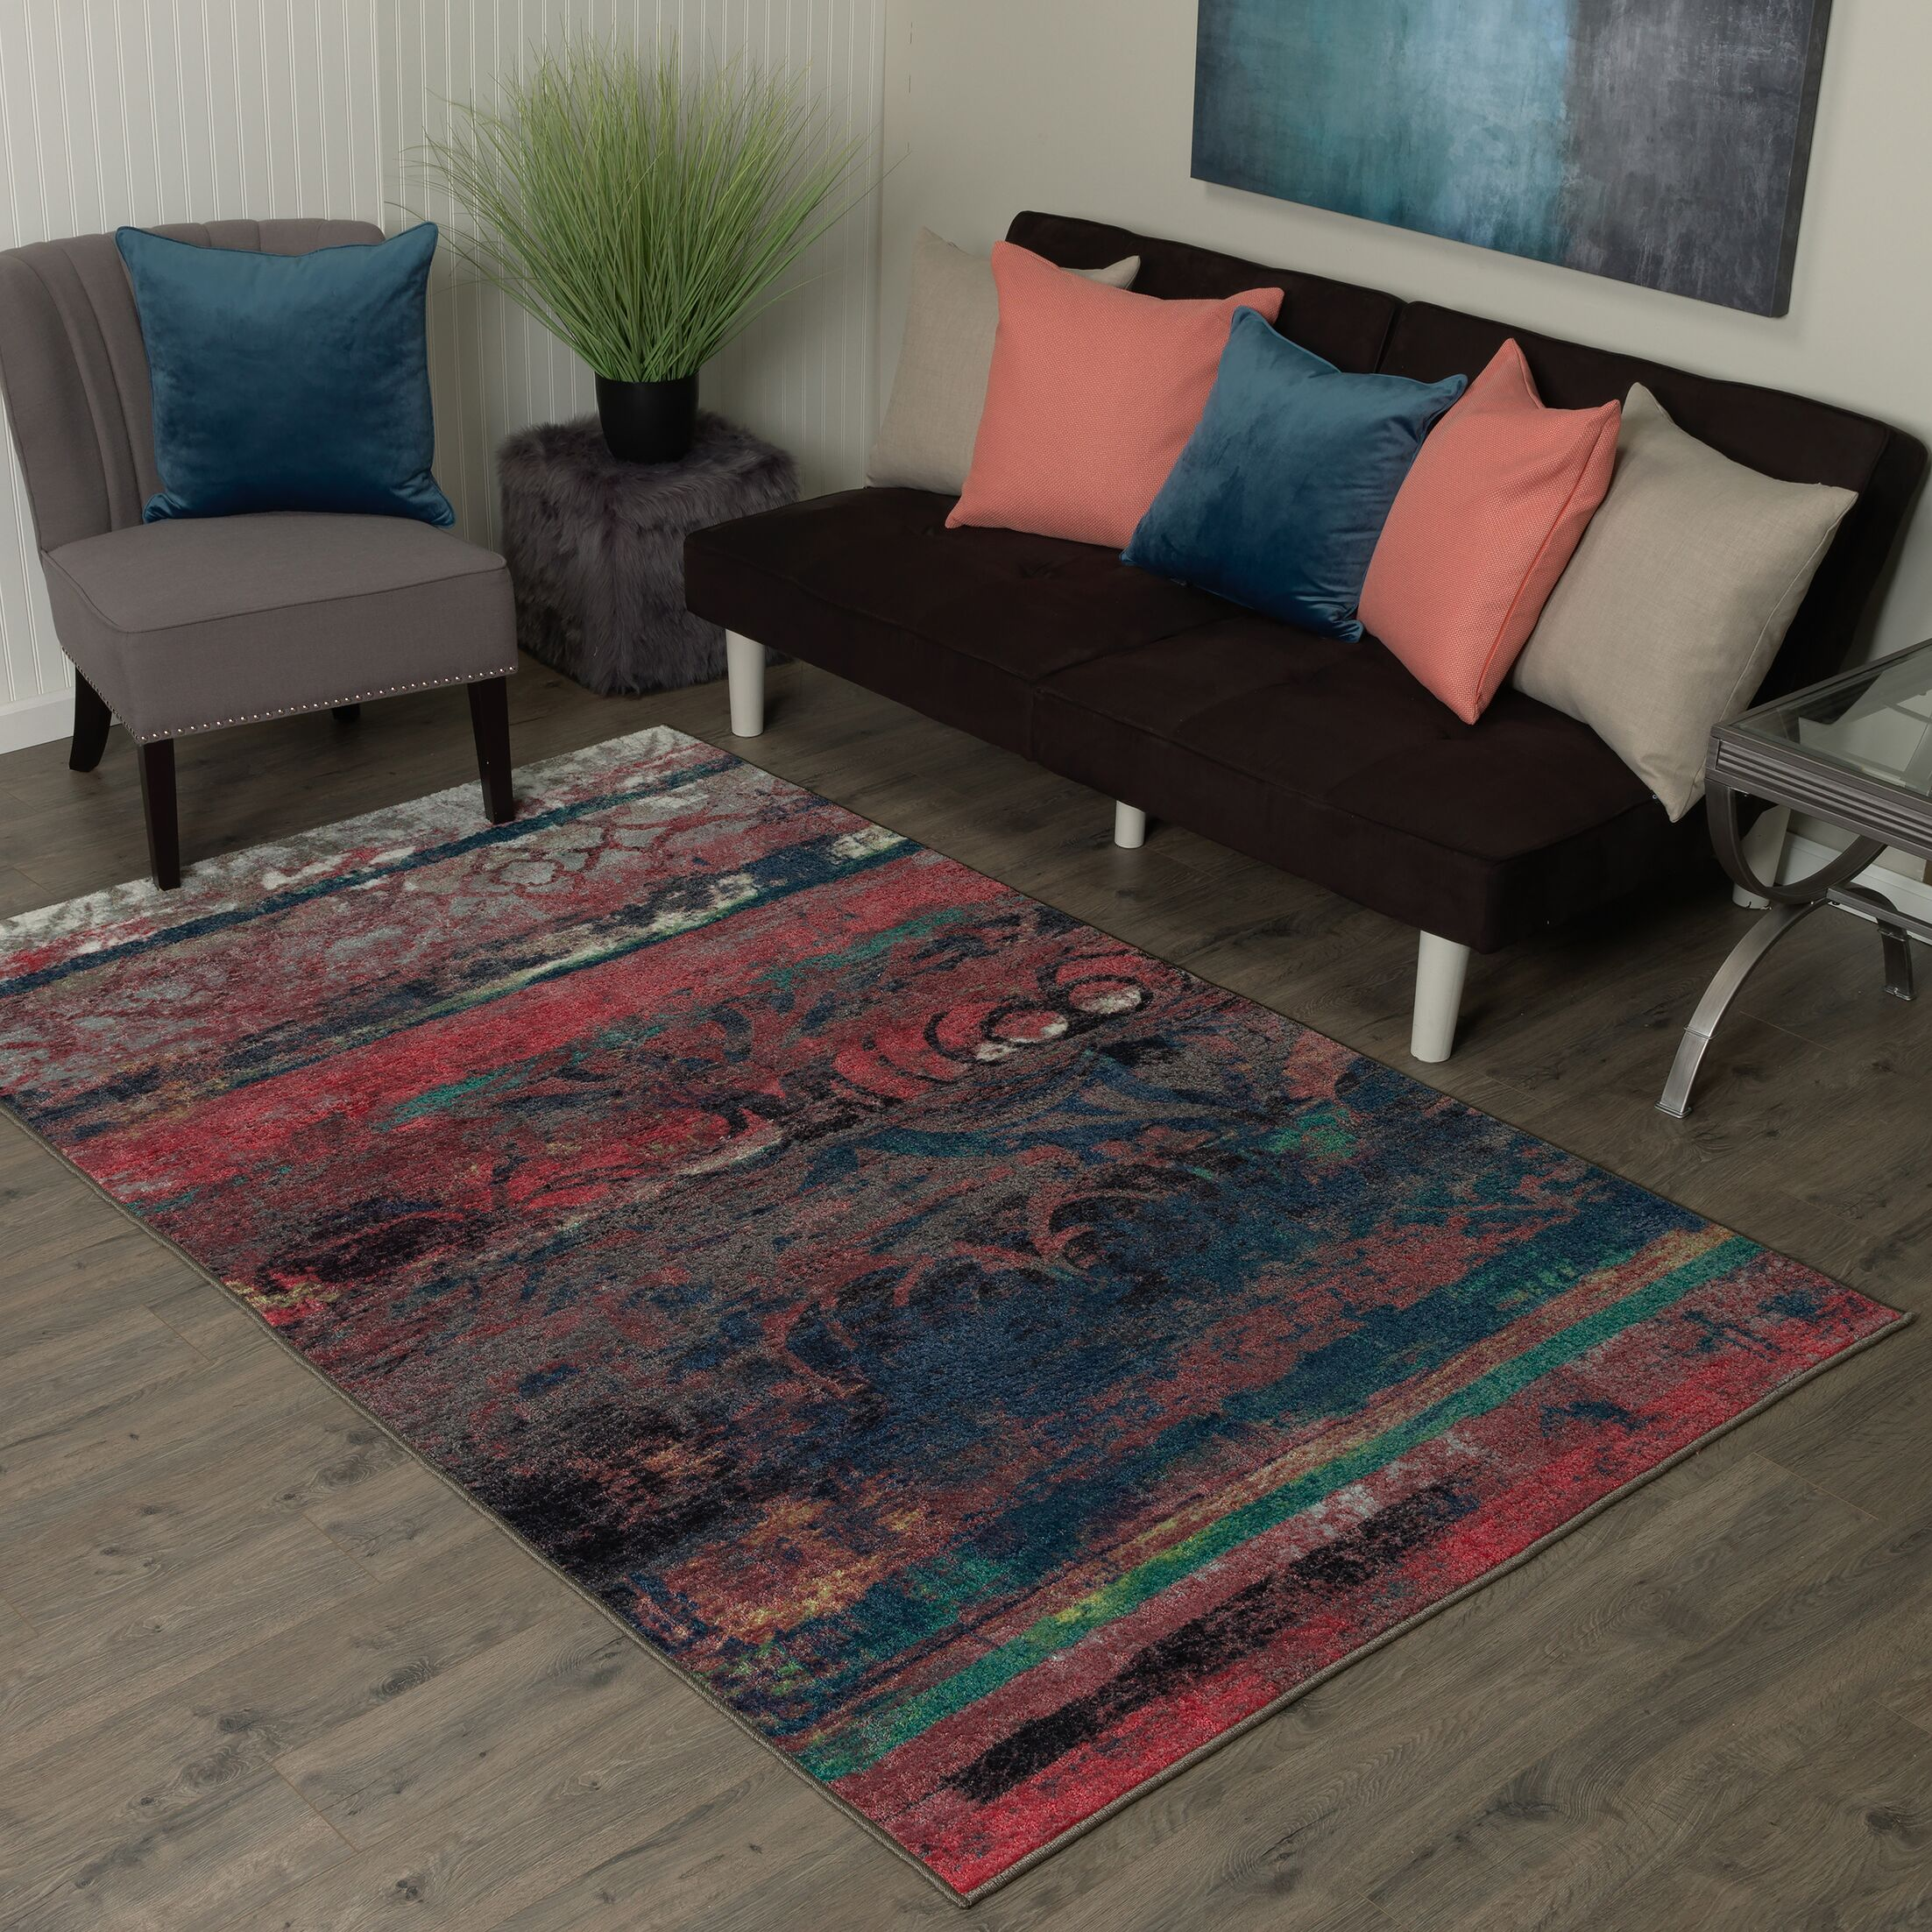 Vermont Eroded Pink/Green/Black Area Rug Rug Size: Rectangle 7'6